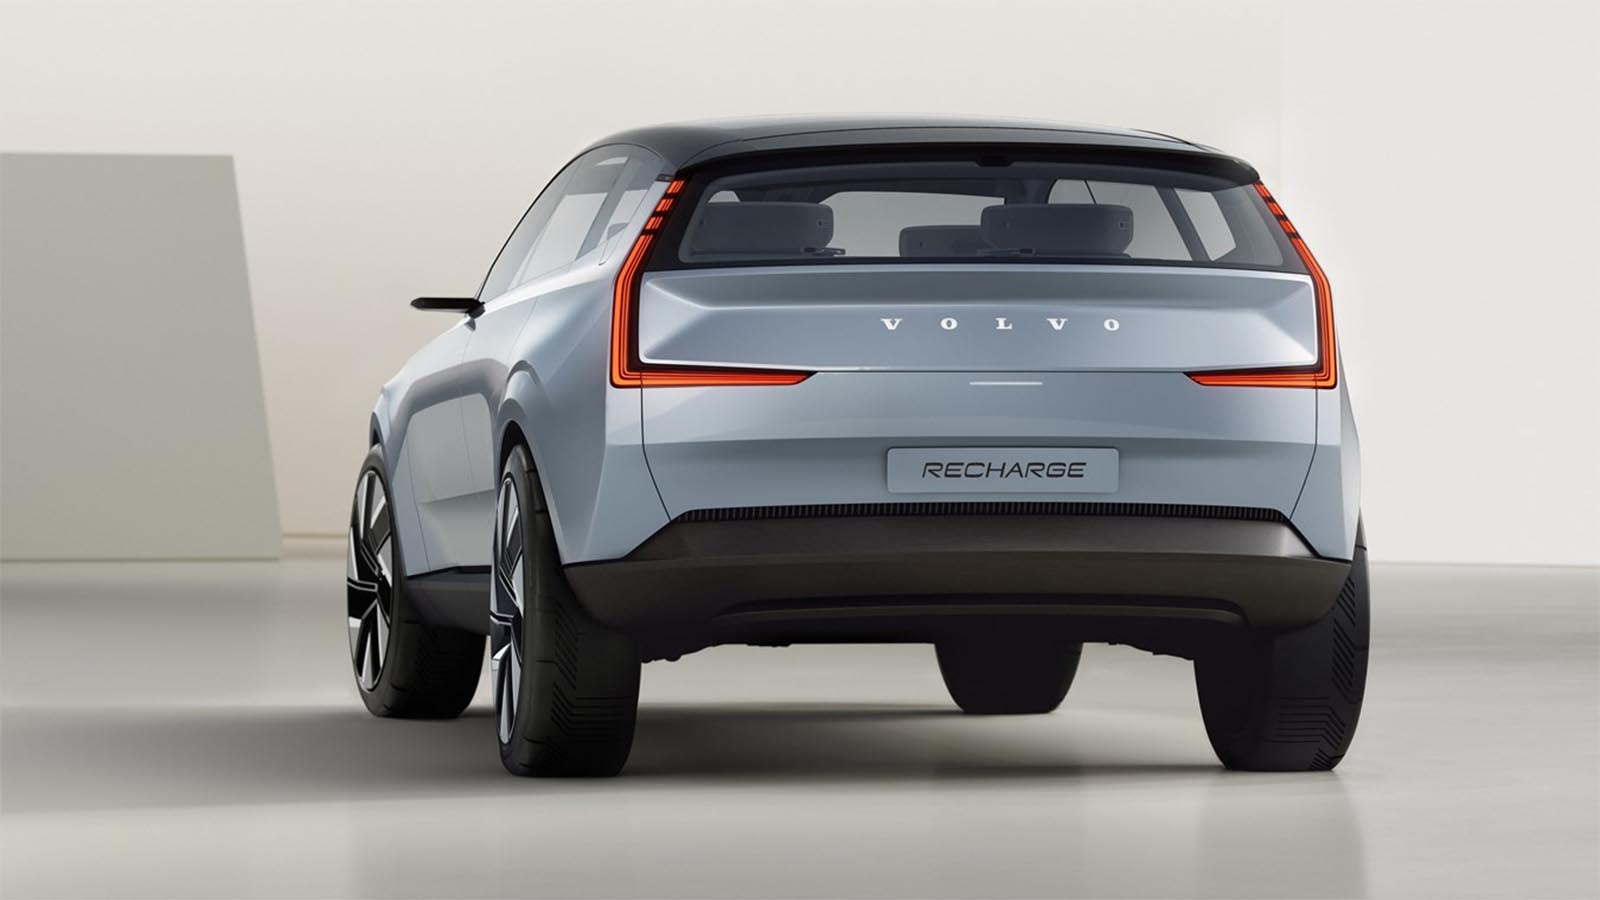 Volvo Concept Recharge Rear